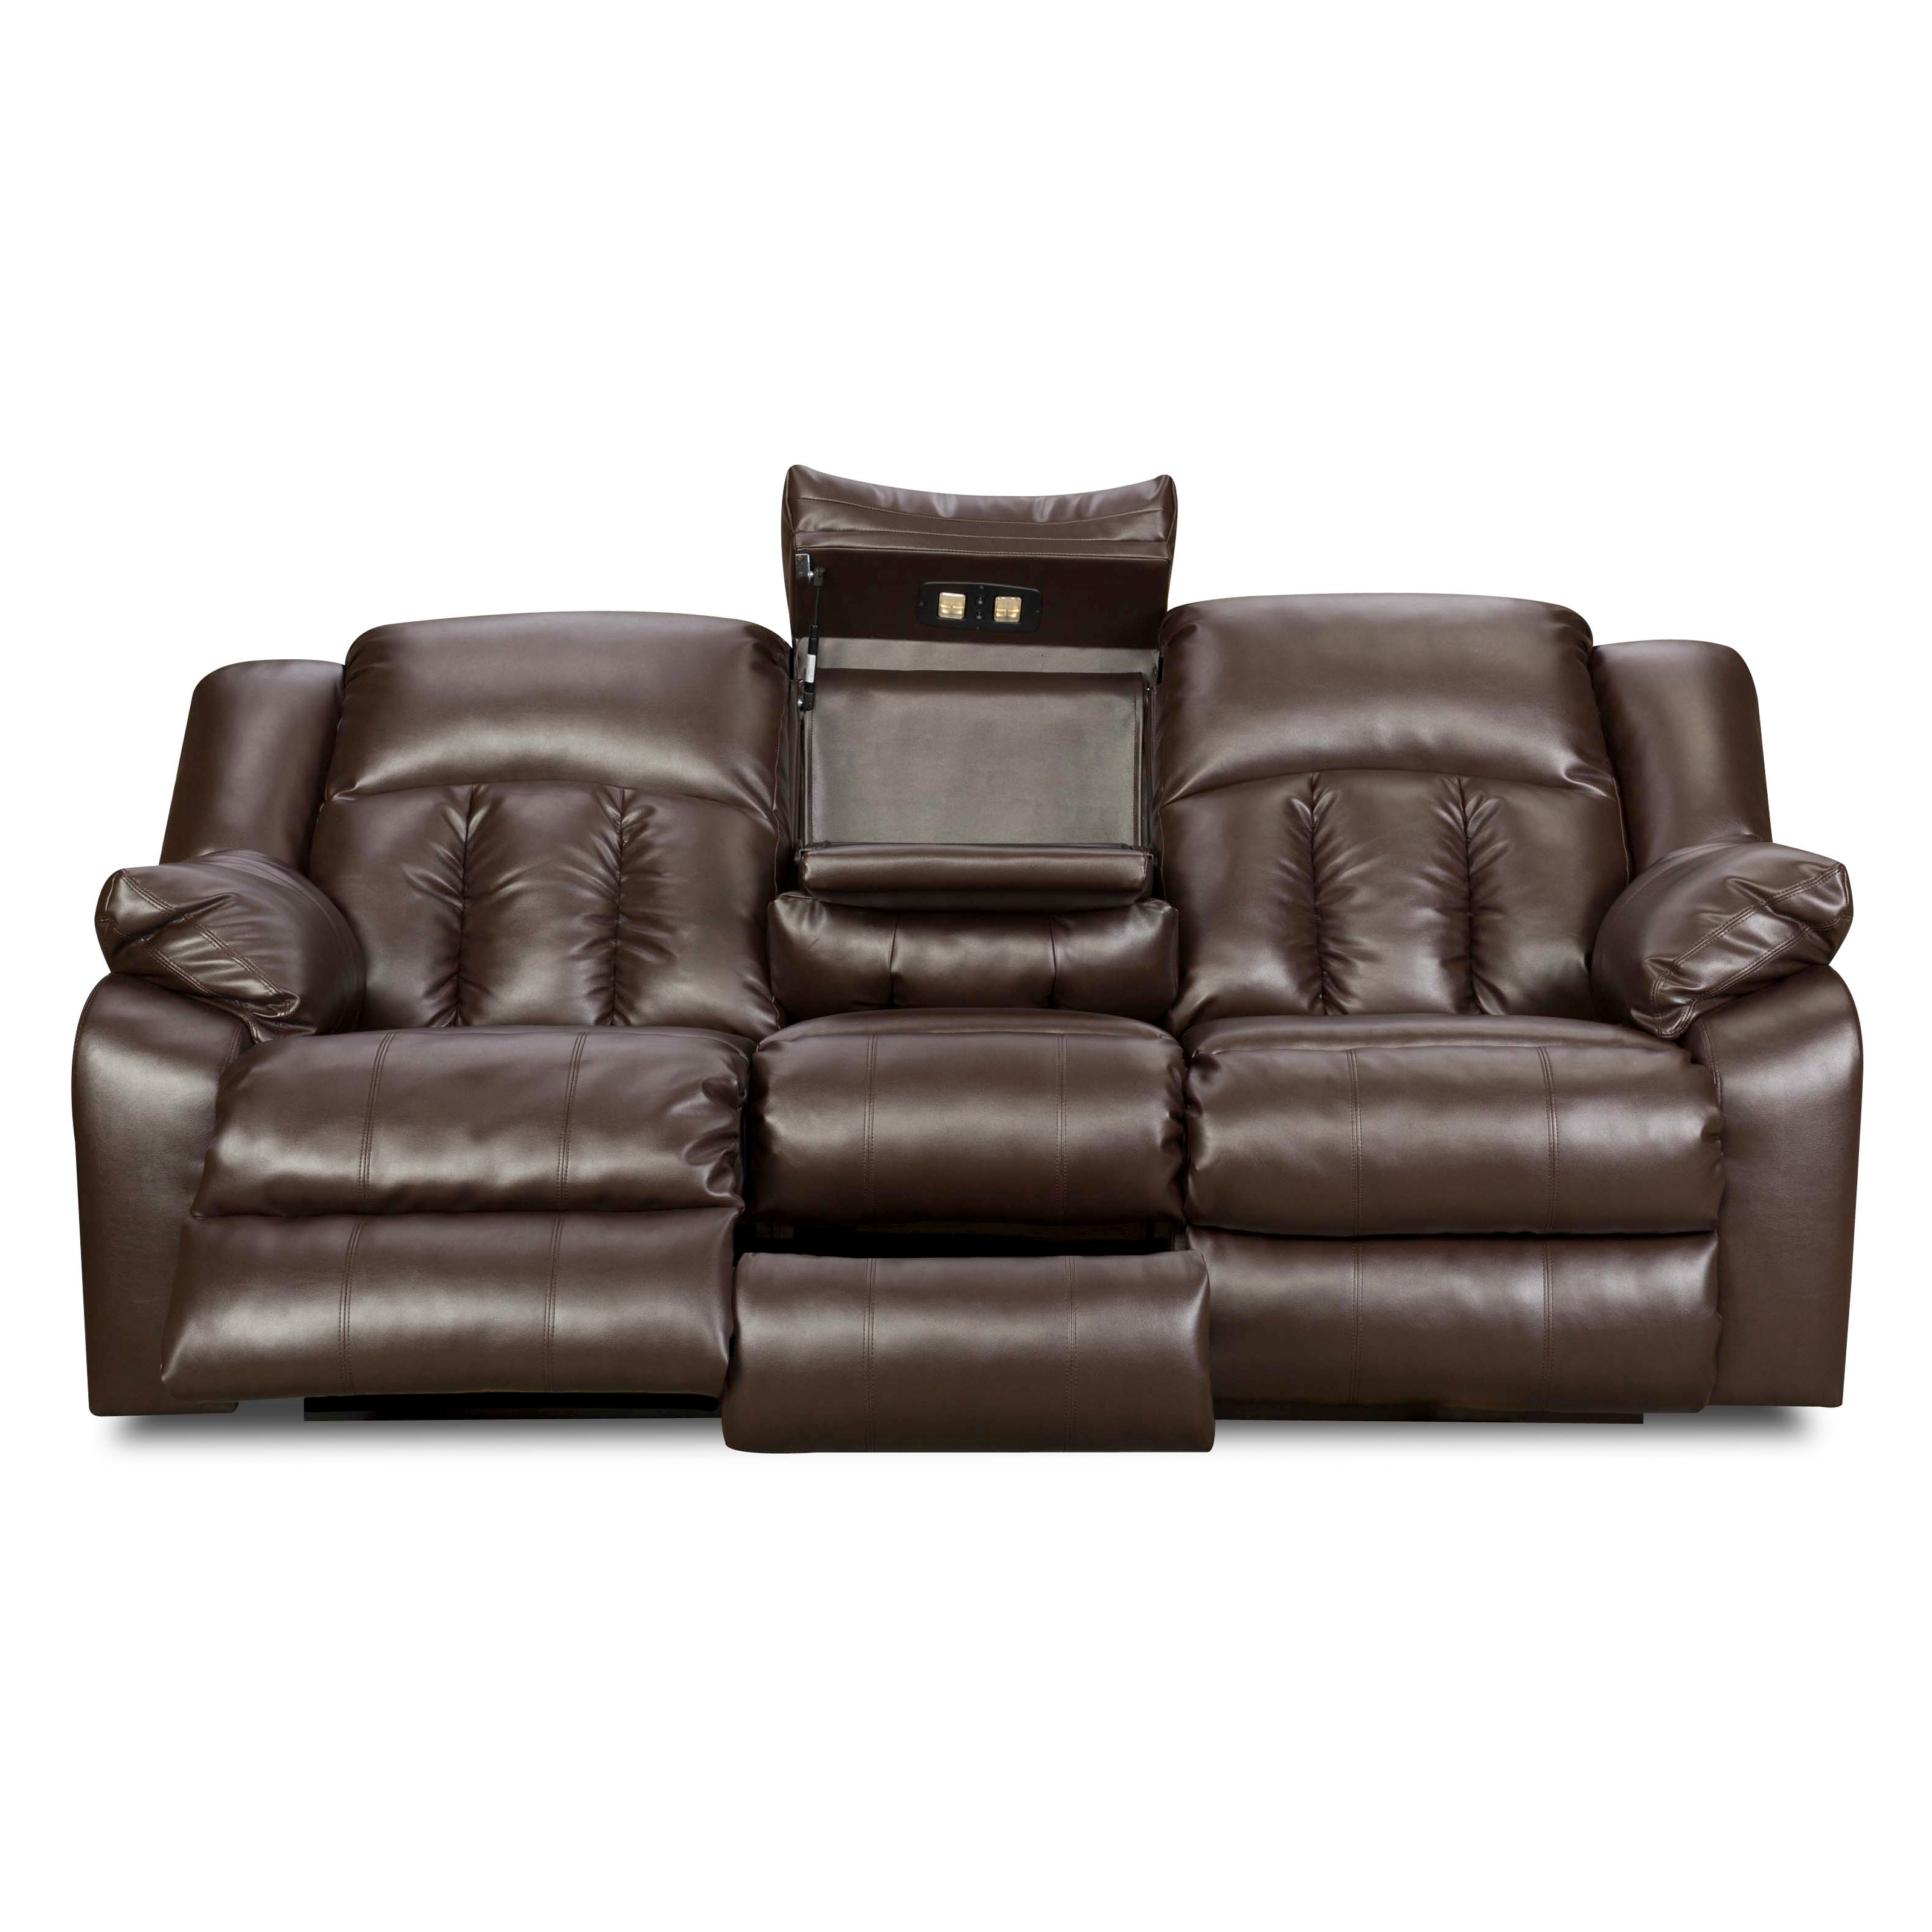 Simmons Upholstery Sebring Bonded Leather Double Motion Sofa Sofas Loveseats At Hayneedle